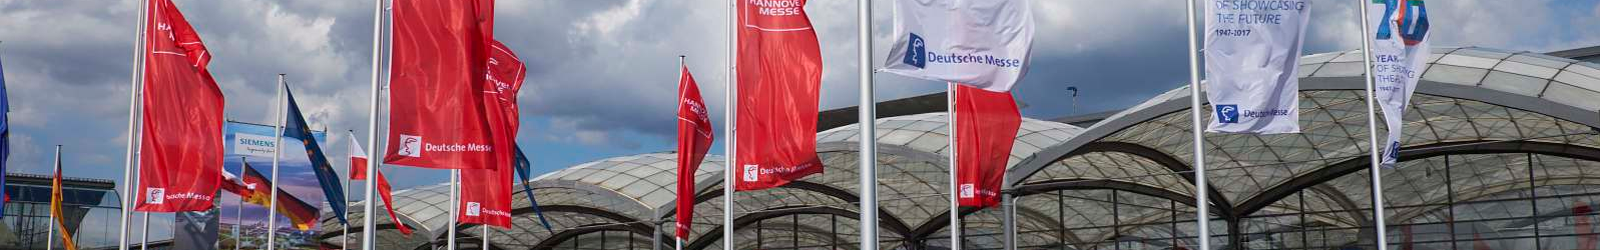 Hannover Messe 2019: PrEstoCloud at the world's leading trade fair for industrial technology